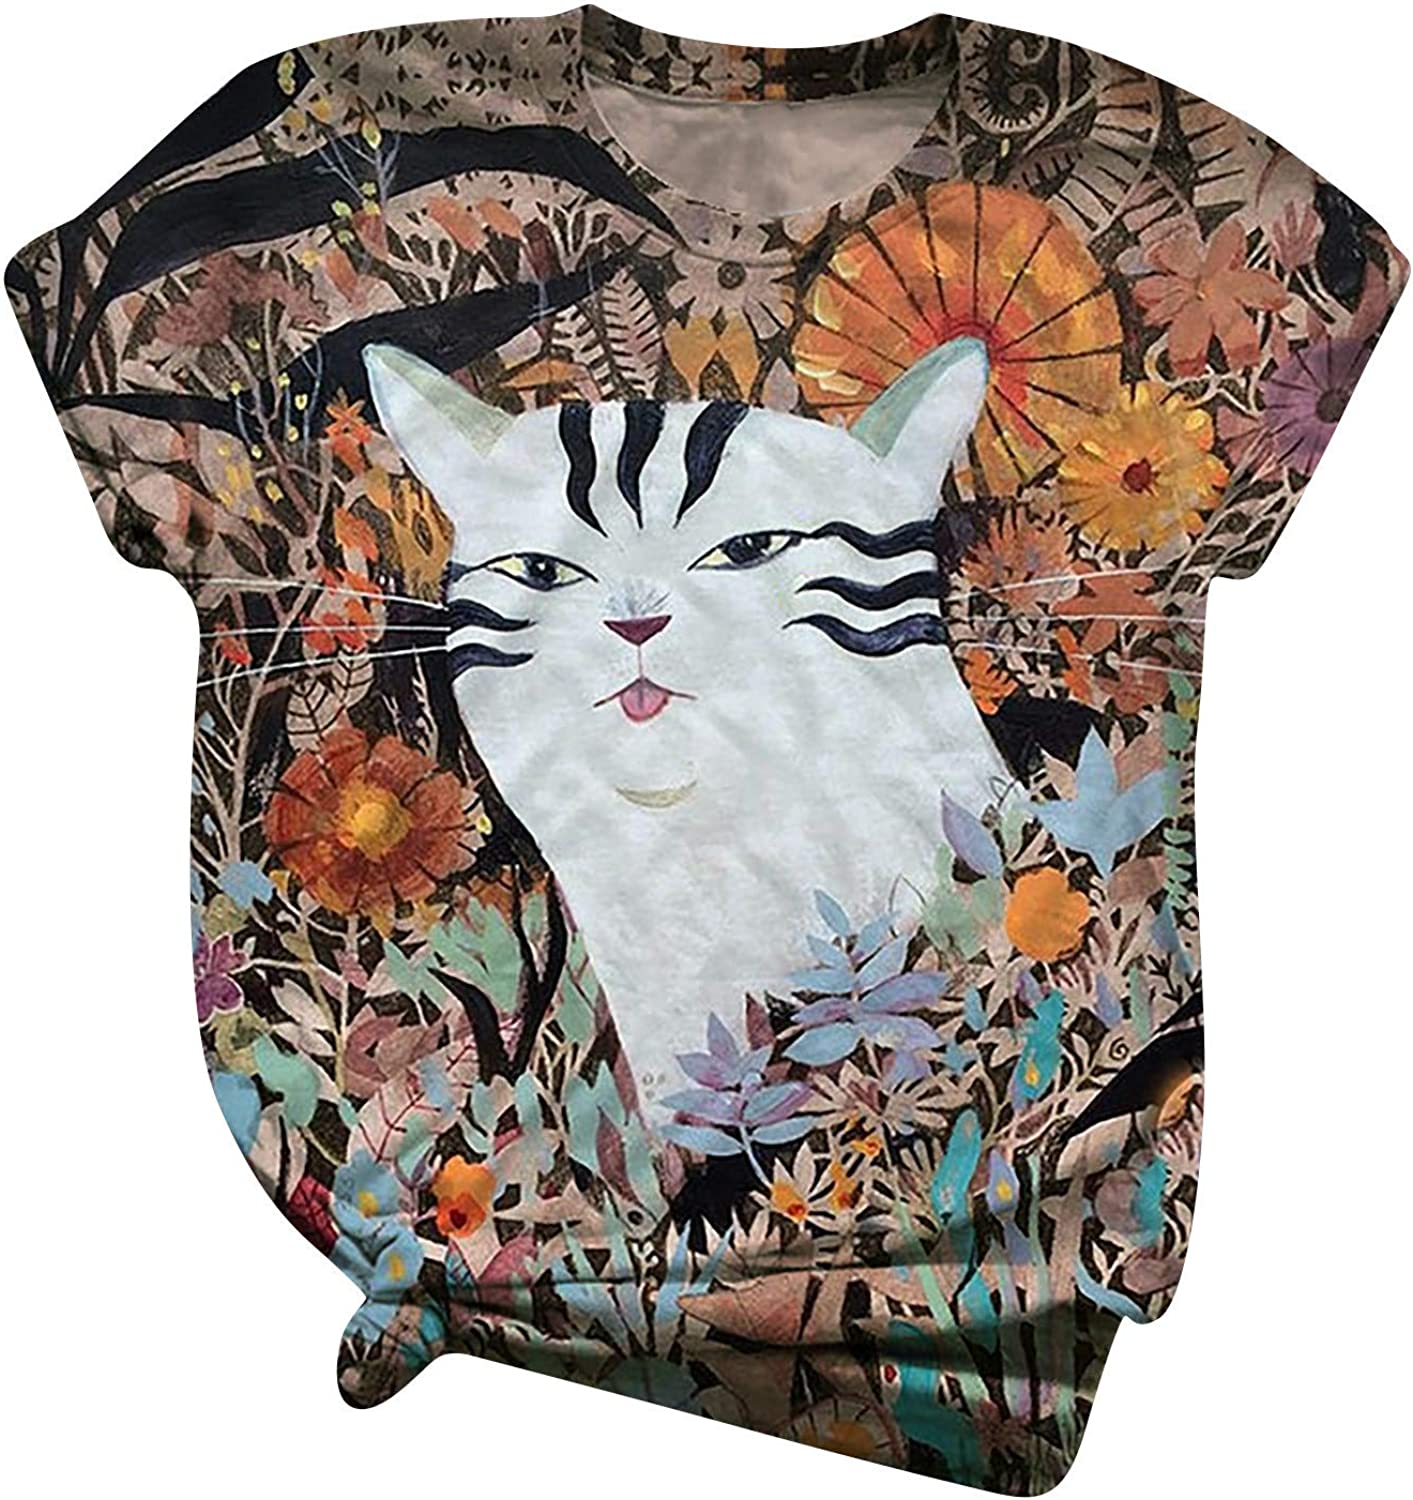 Women Short Sleeve Graphic Tshirts, Women's Crew Neck Vintage Cat Printed Summer Girls Casual Top Tee Shirt Blouse Tunic